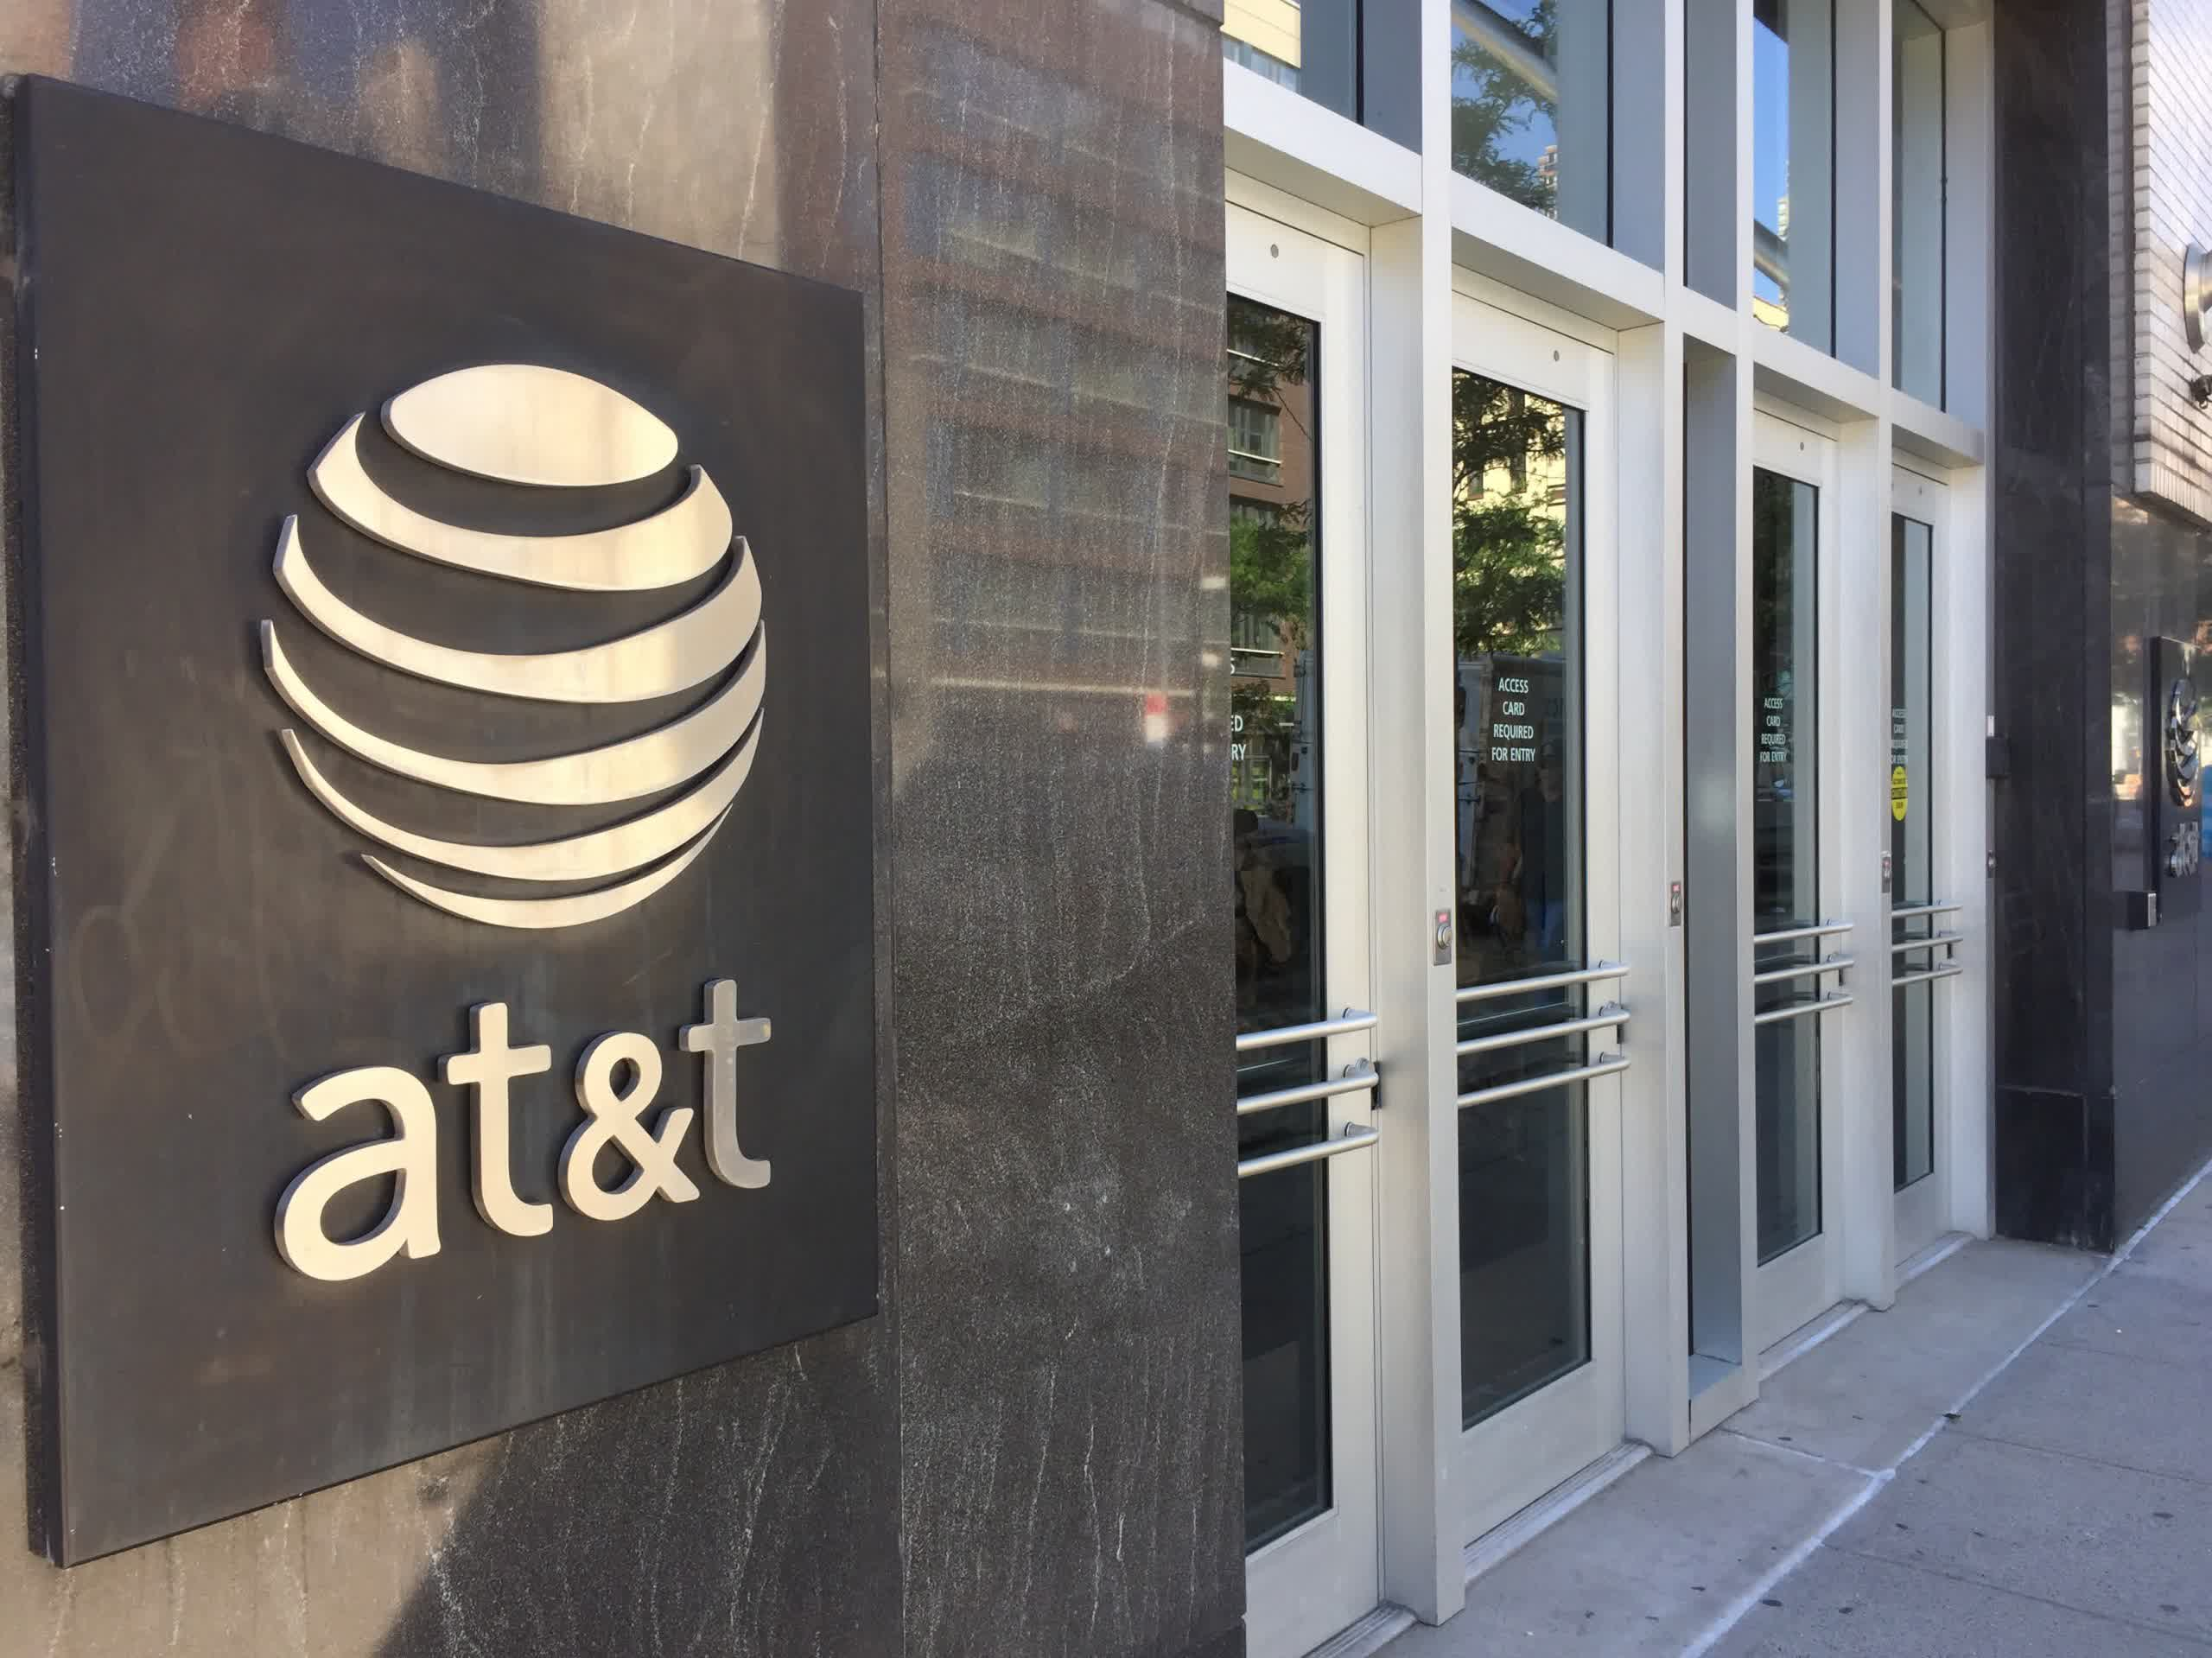 AT&T will no longer allow unlimited TV streaming now that California law bans 'zero-rating'